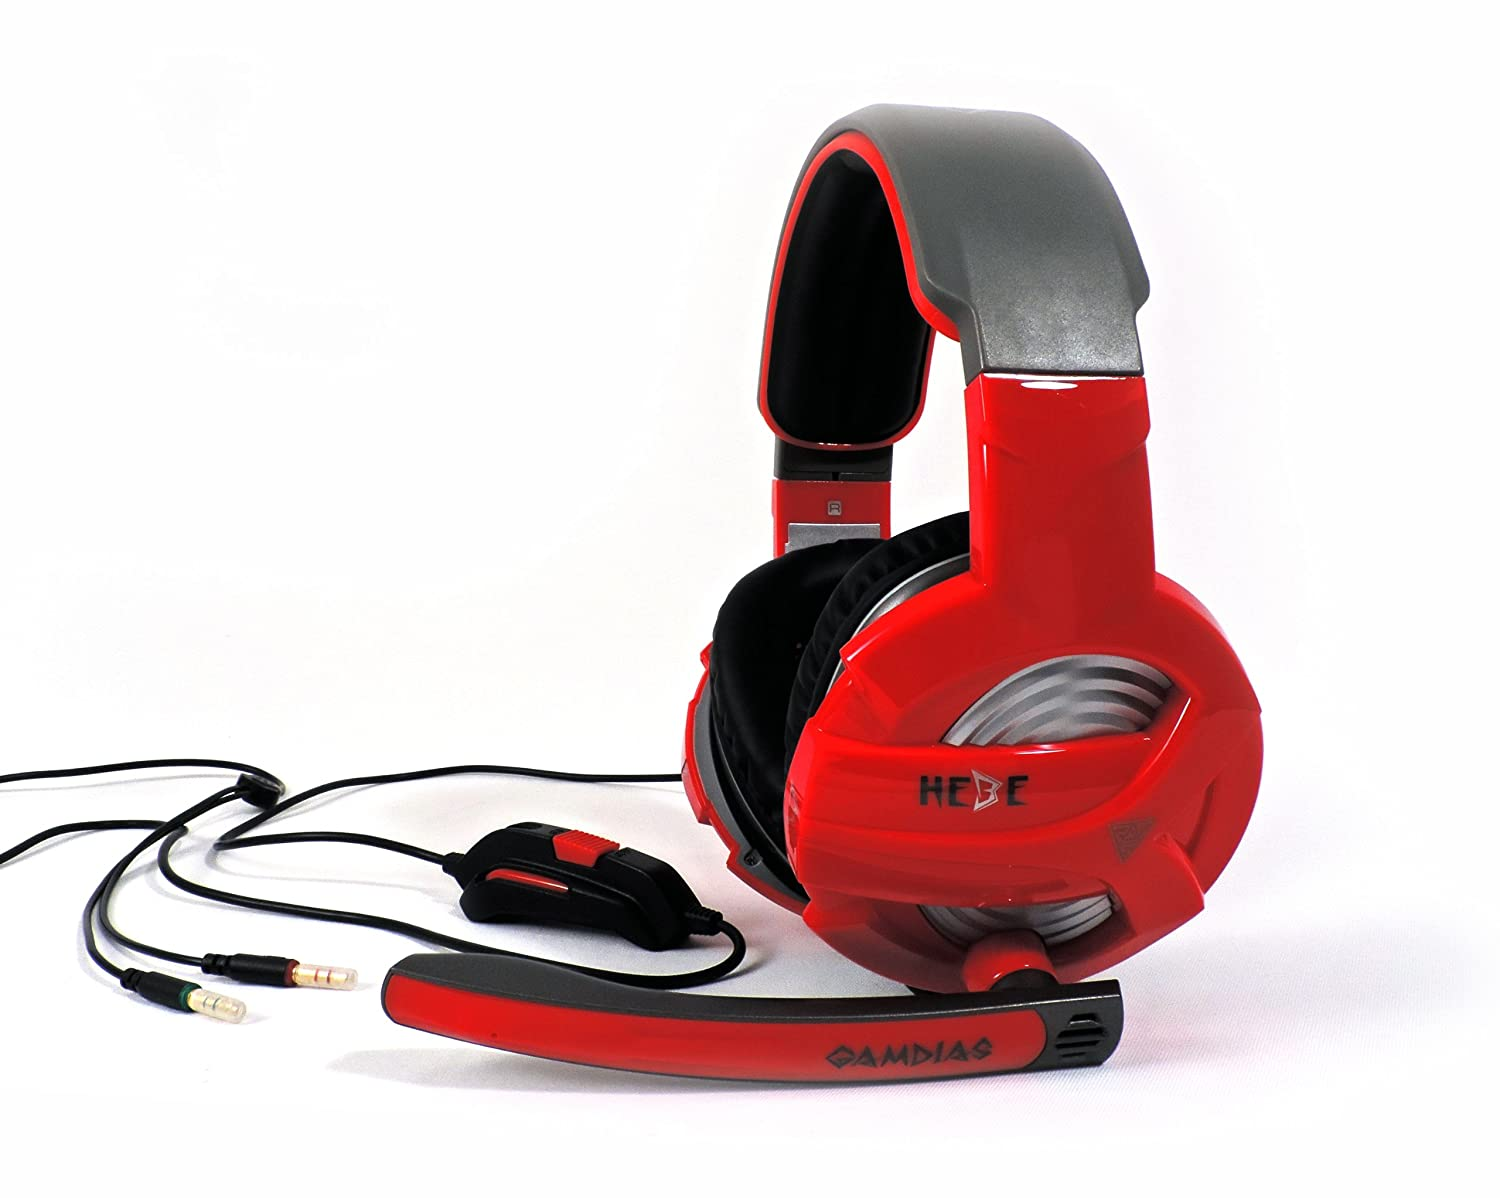 GAMDIAS Hebe V1 Gaming Headset